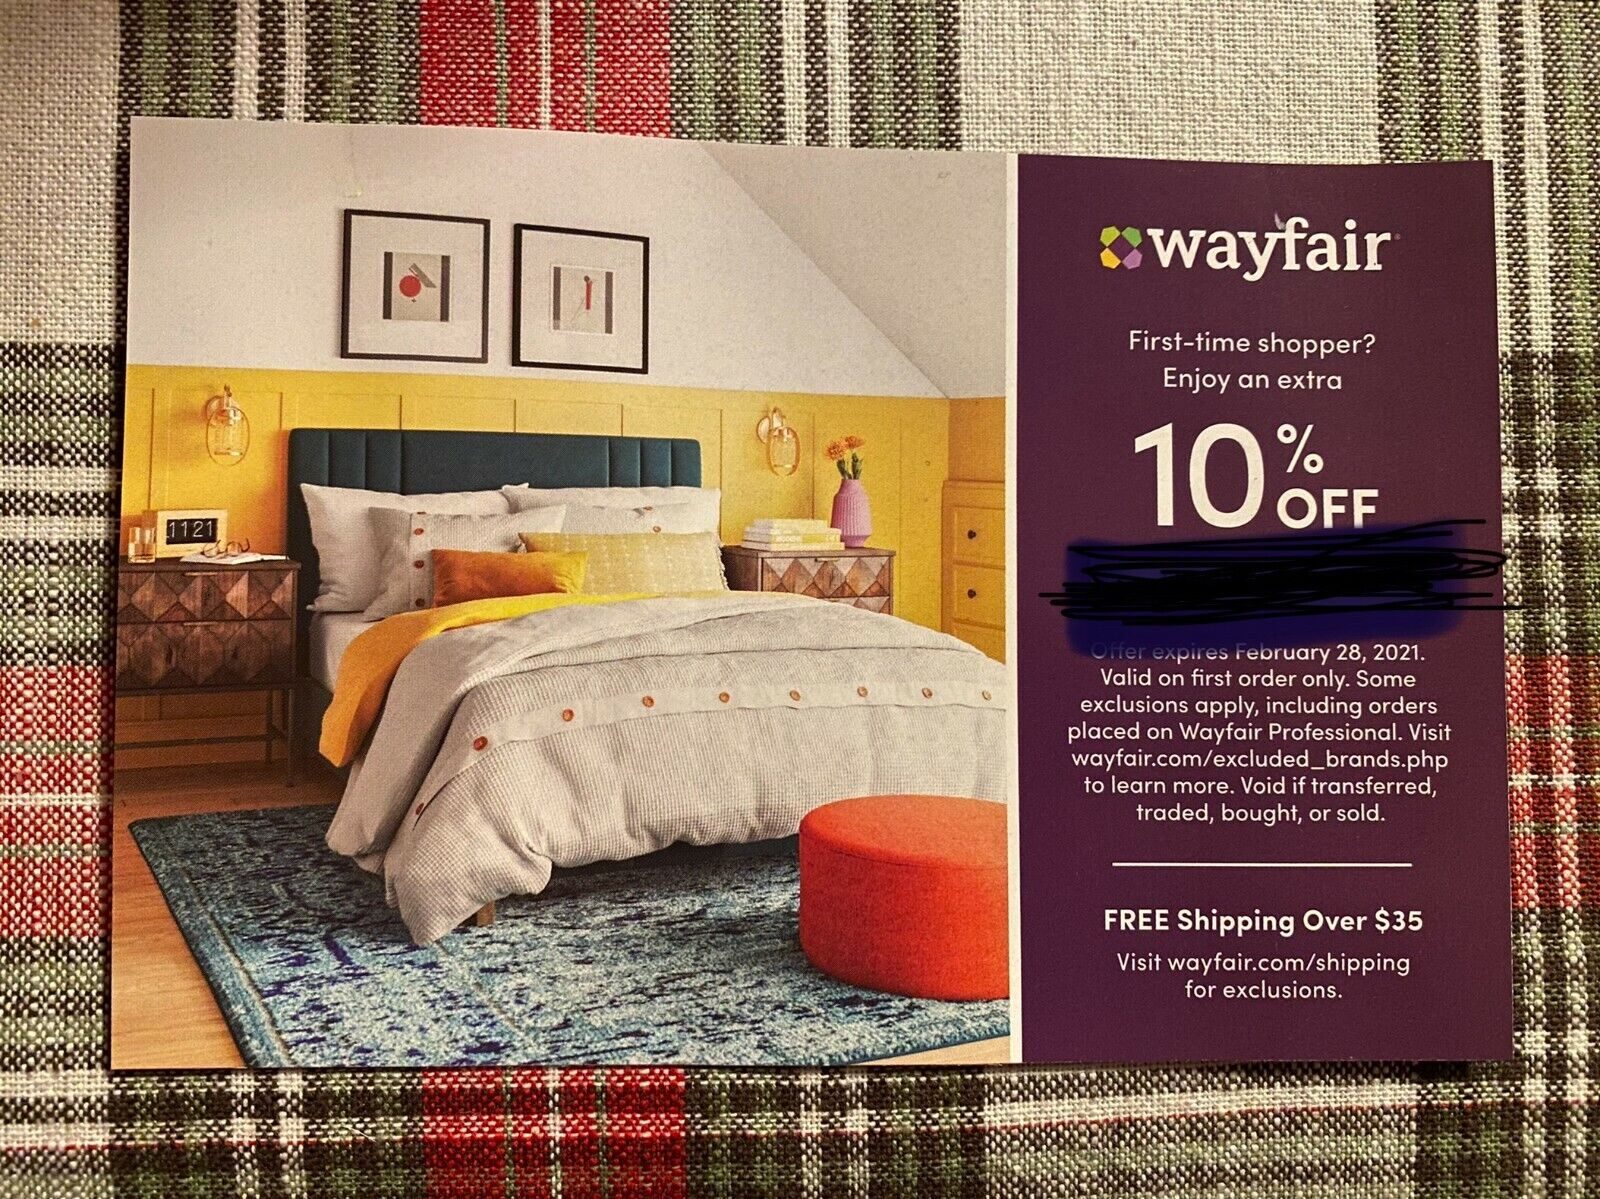 Wayfair Coupon 10 Off Discount Promo Code Expires Feb 28 2021 FIRST ORDER ONLY - $8.98